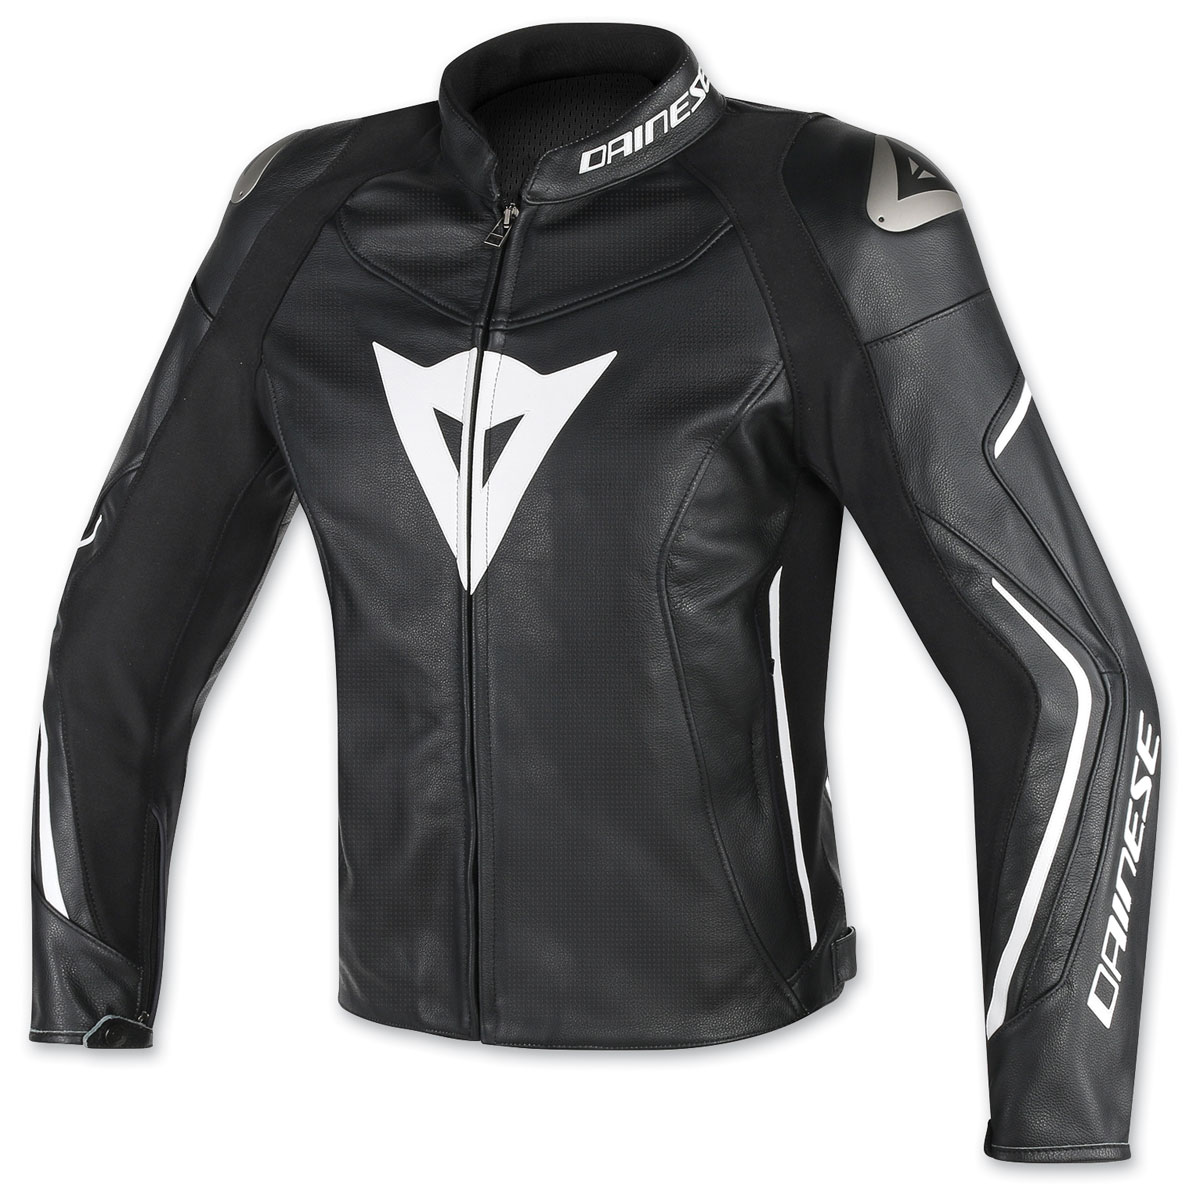 Dainese Men's Assen Perforated Black/White Leather Jacket